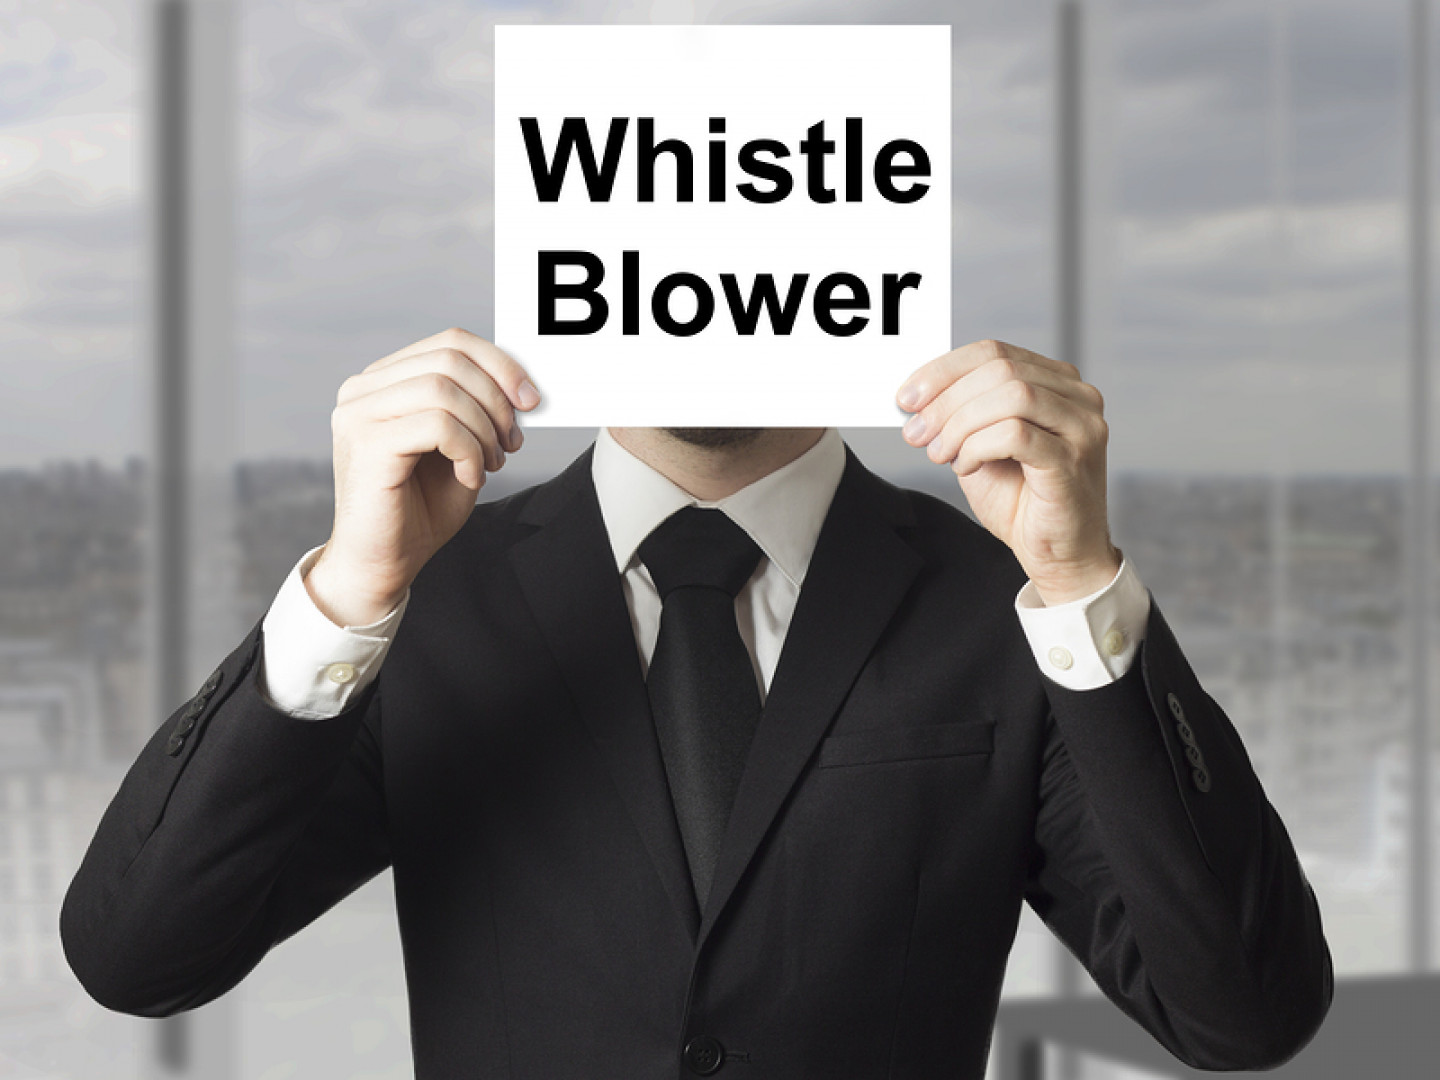 Recovery for Employees Under the Whistle Blower/False Claim Act